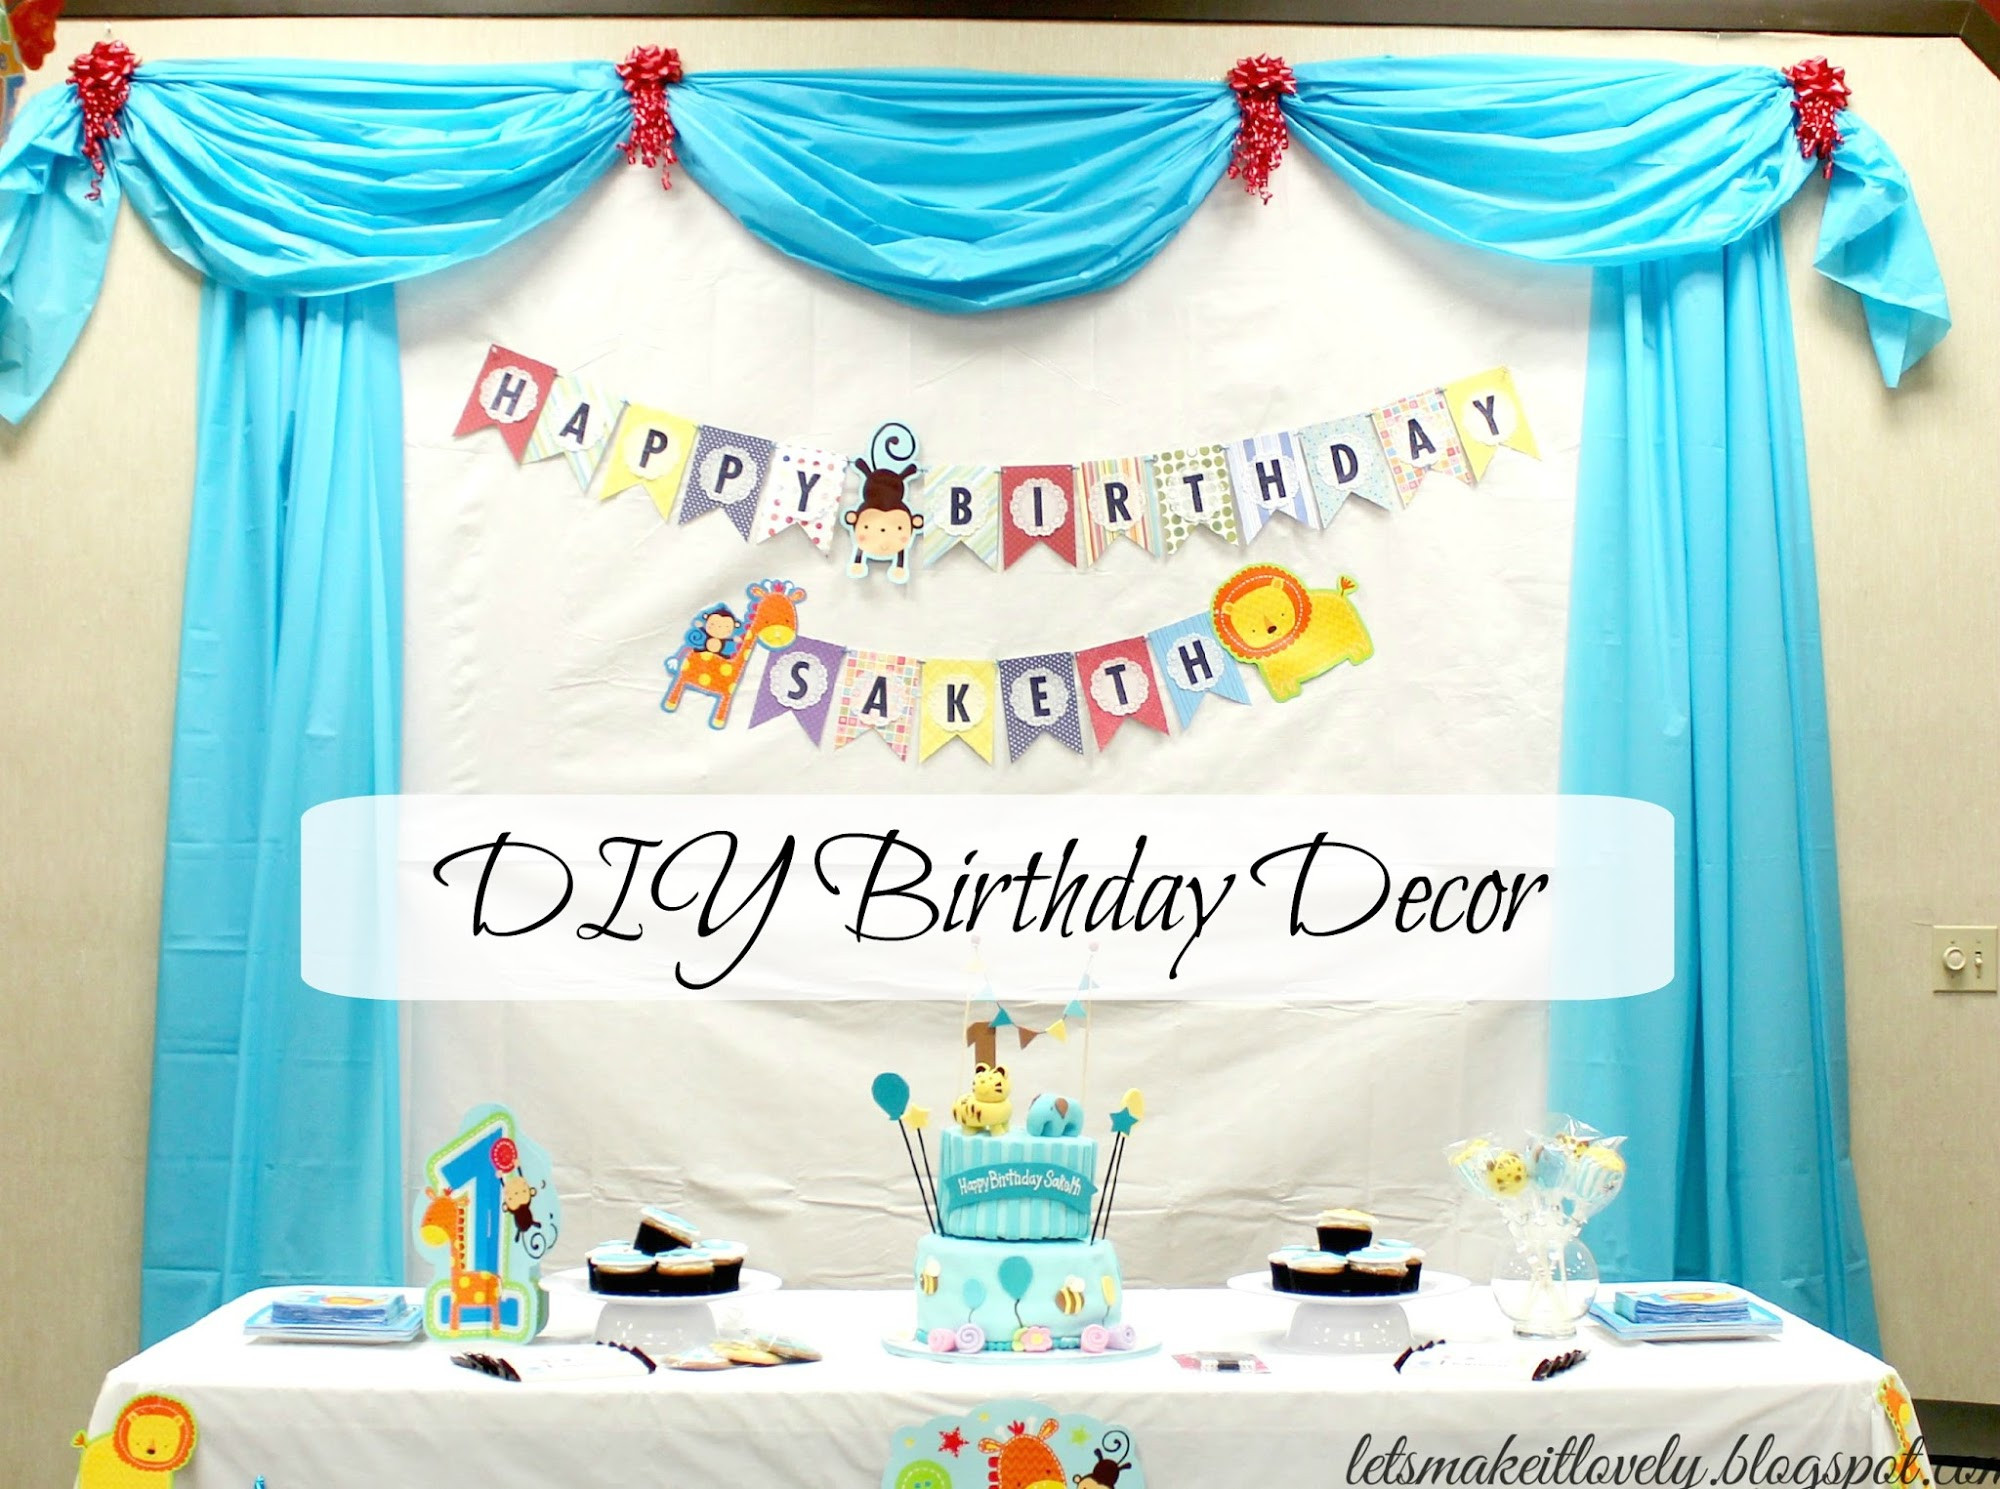 background decoration for birthday party at home ; 97-background-decoration-for-birthday-party-at-home-birthday-inspiration-of-party-wall-decor-of-party-wall-decor